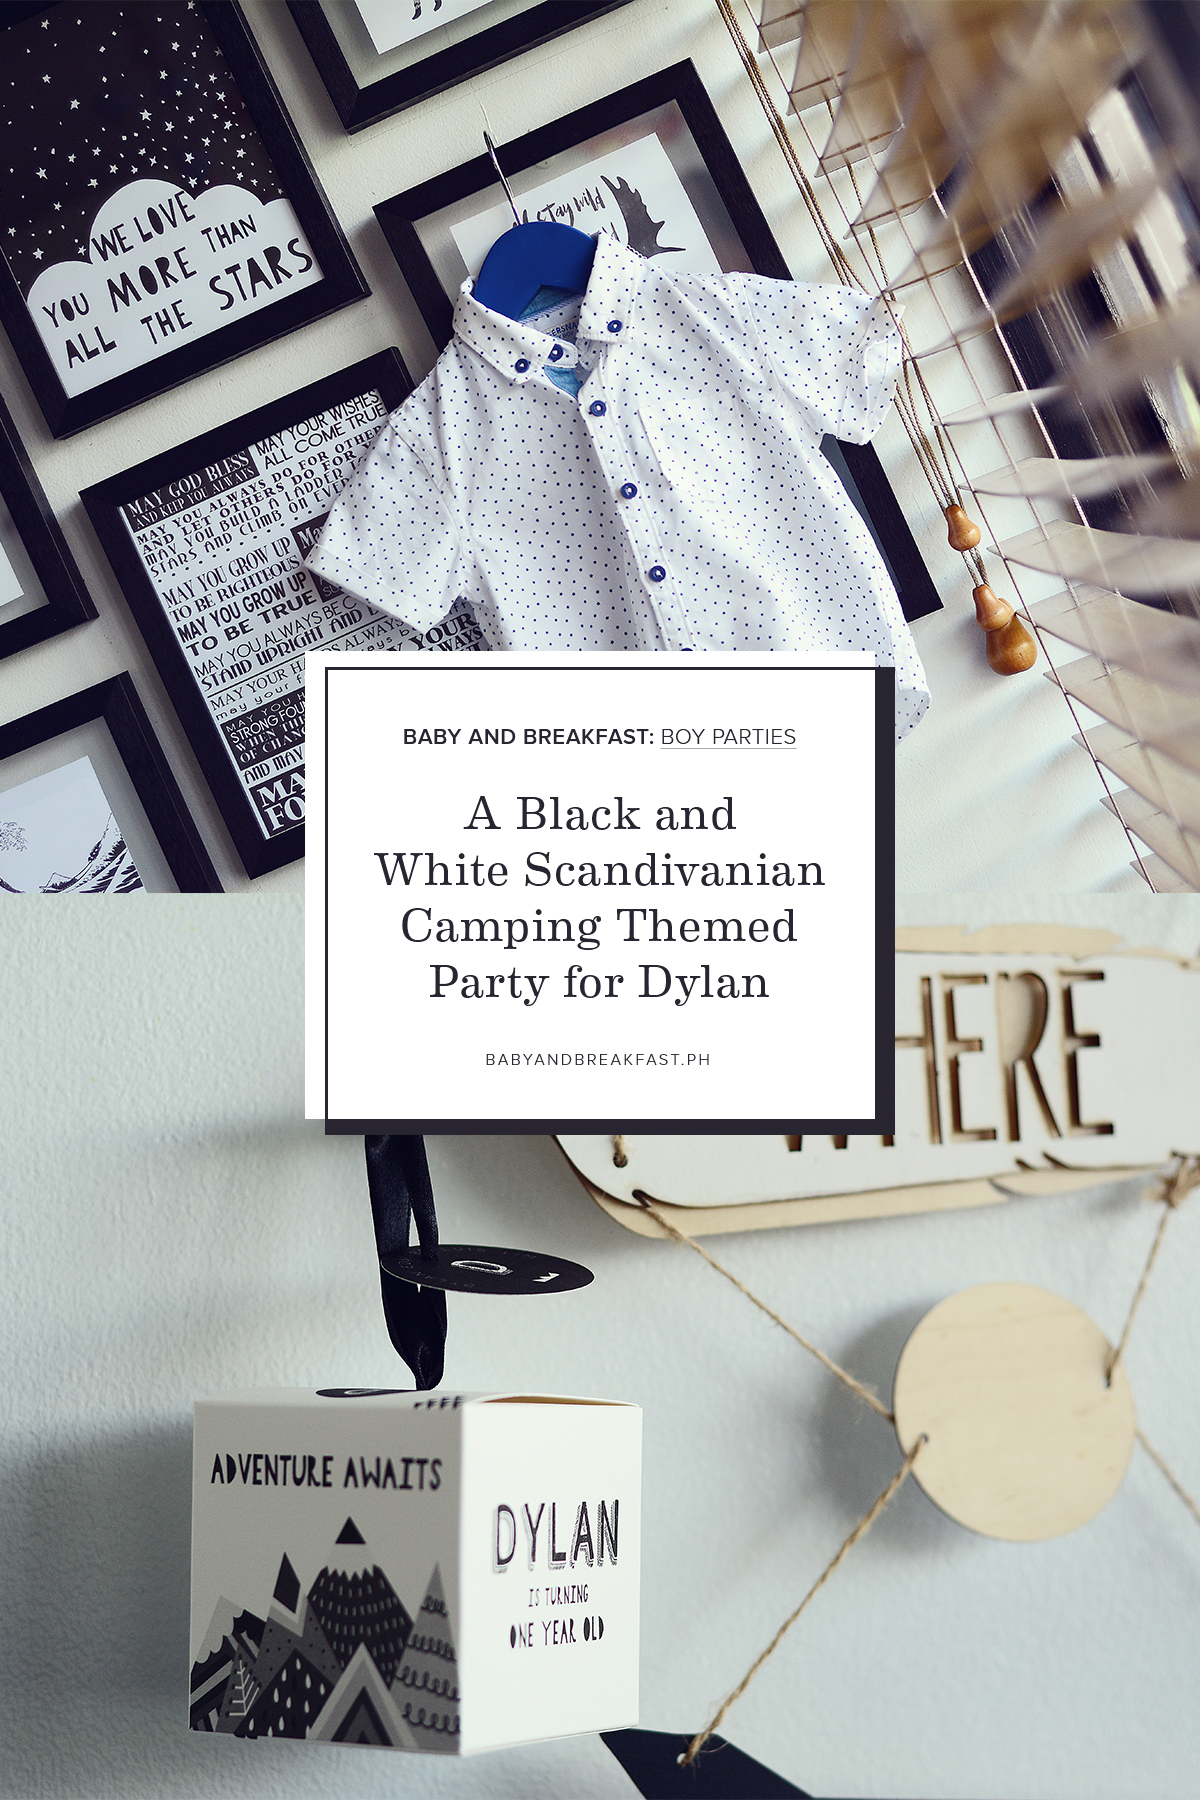 Baby and Breakfast: Boy Parties A Black and White Scandinavian Themed Camping Party for Dylan